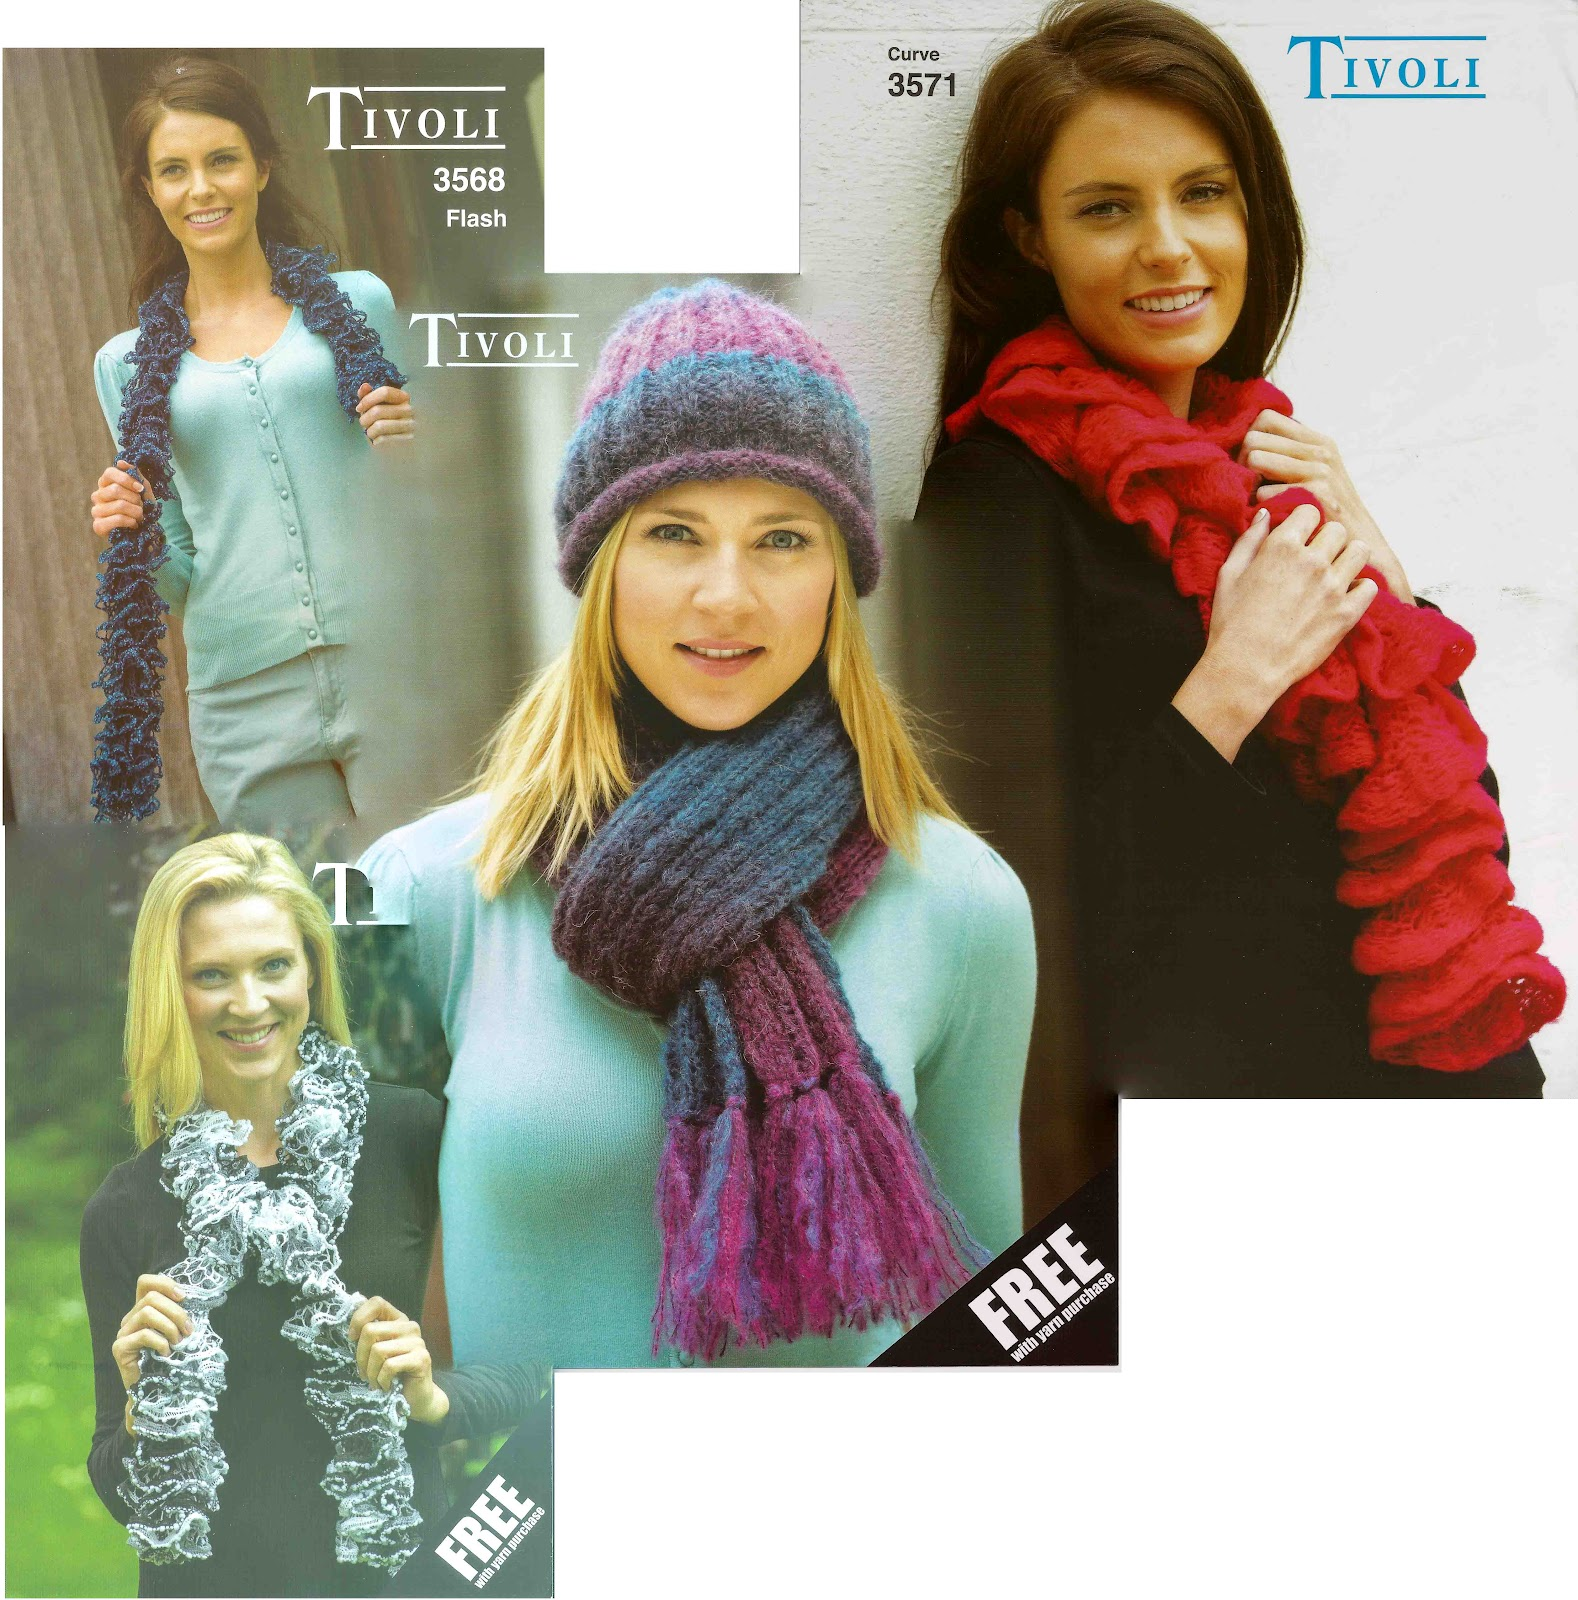 8b886e50725 Free Patterns by Tivoli Spinners  When you buy on of Tivoli s new scarf yarn  we send you a knitting pattern free of charge. The new yarns are Curves